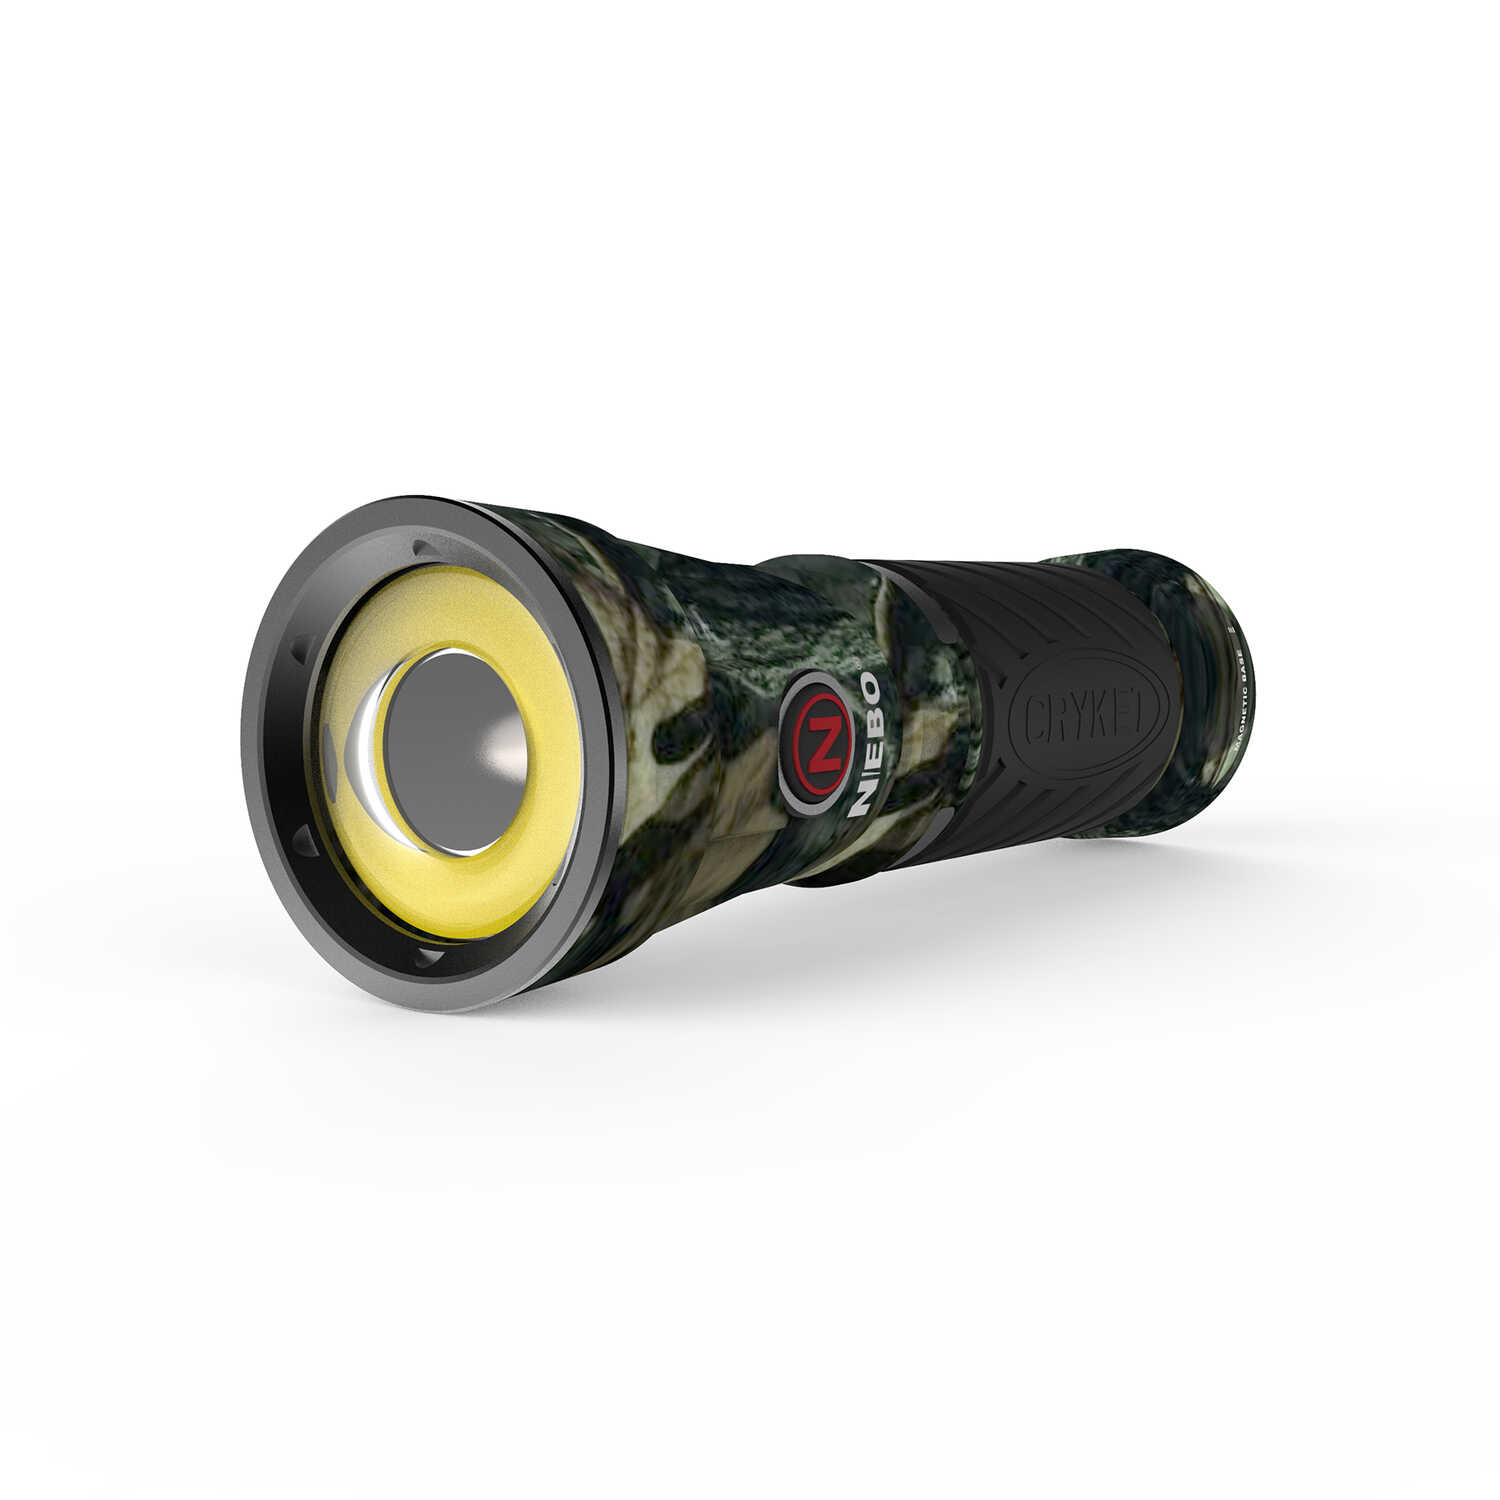 Nebo  Cryket  250 lumens Camouflage  LED  COB Flashlight  AAA Battery